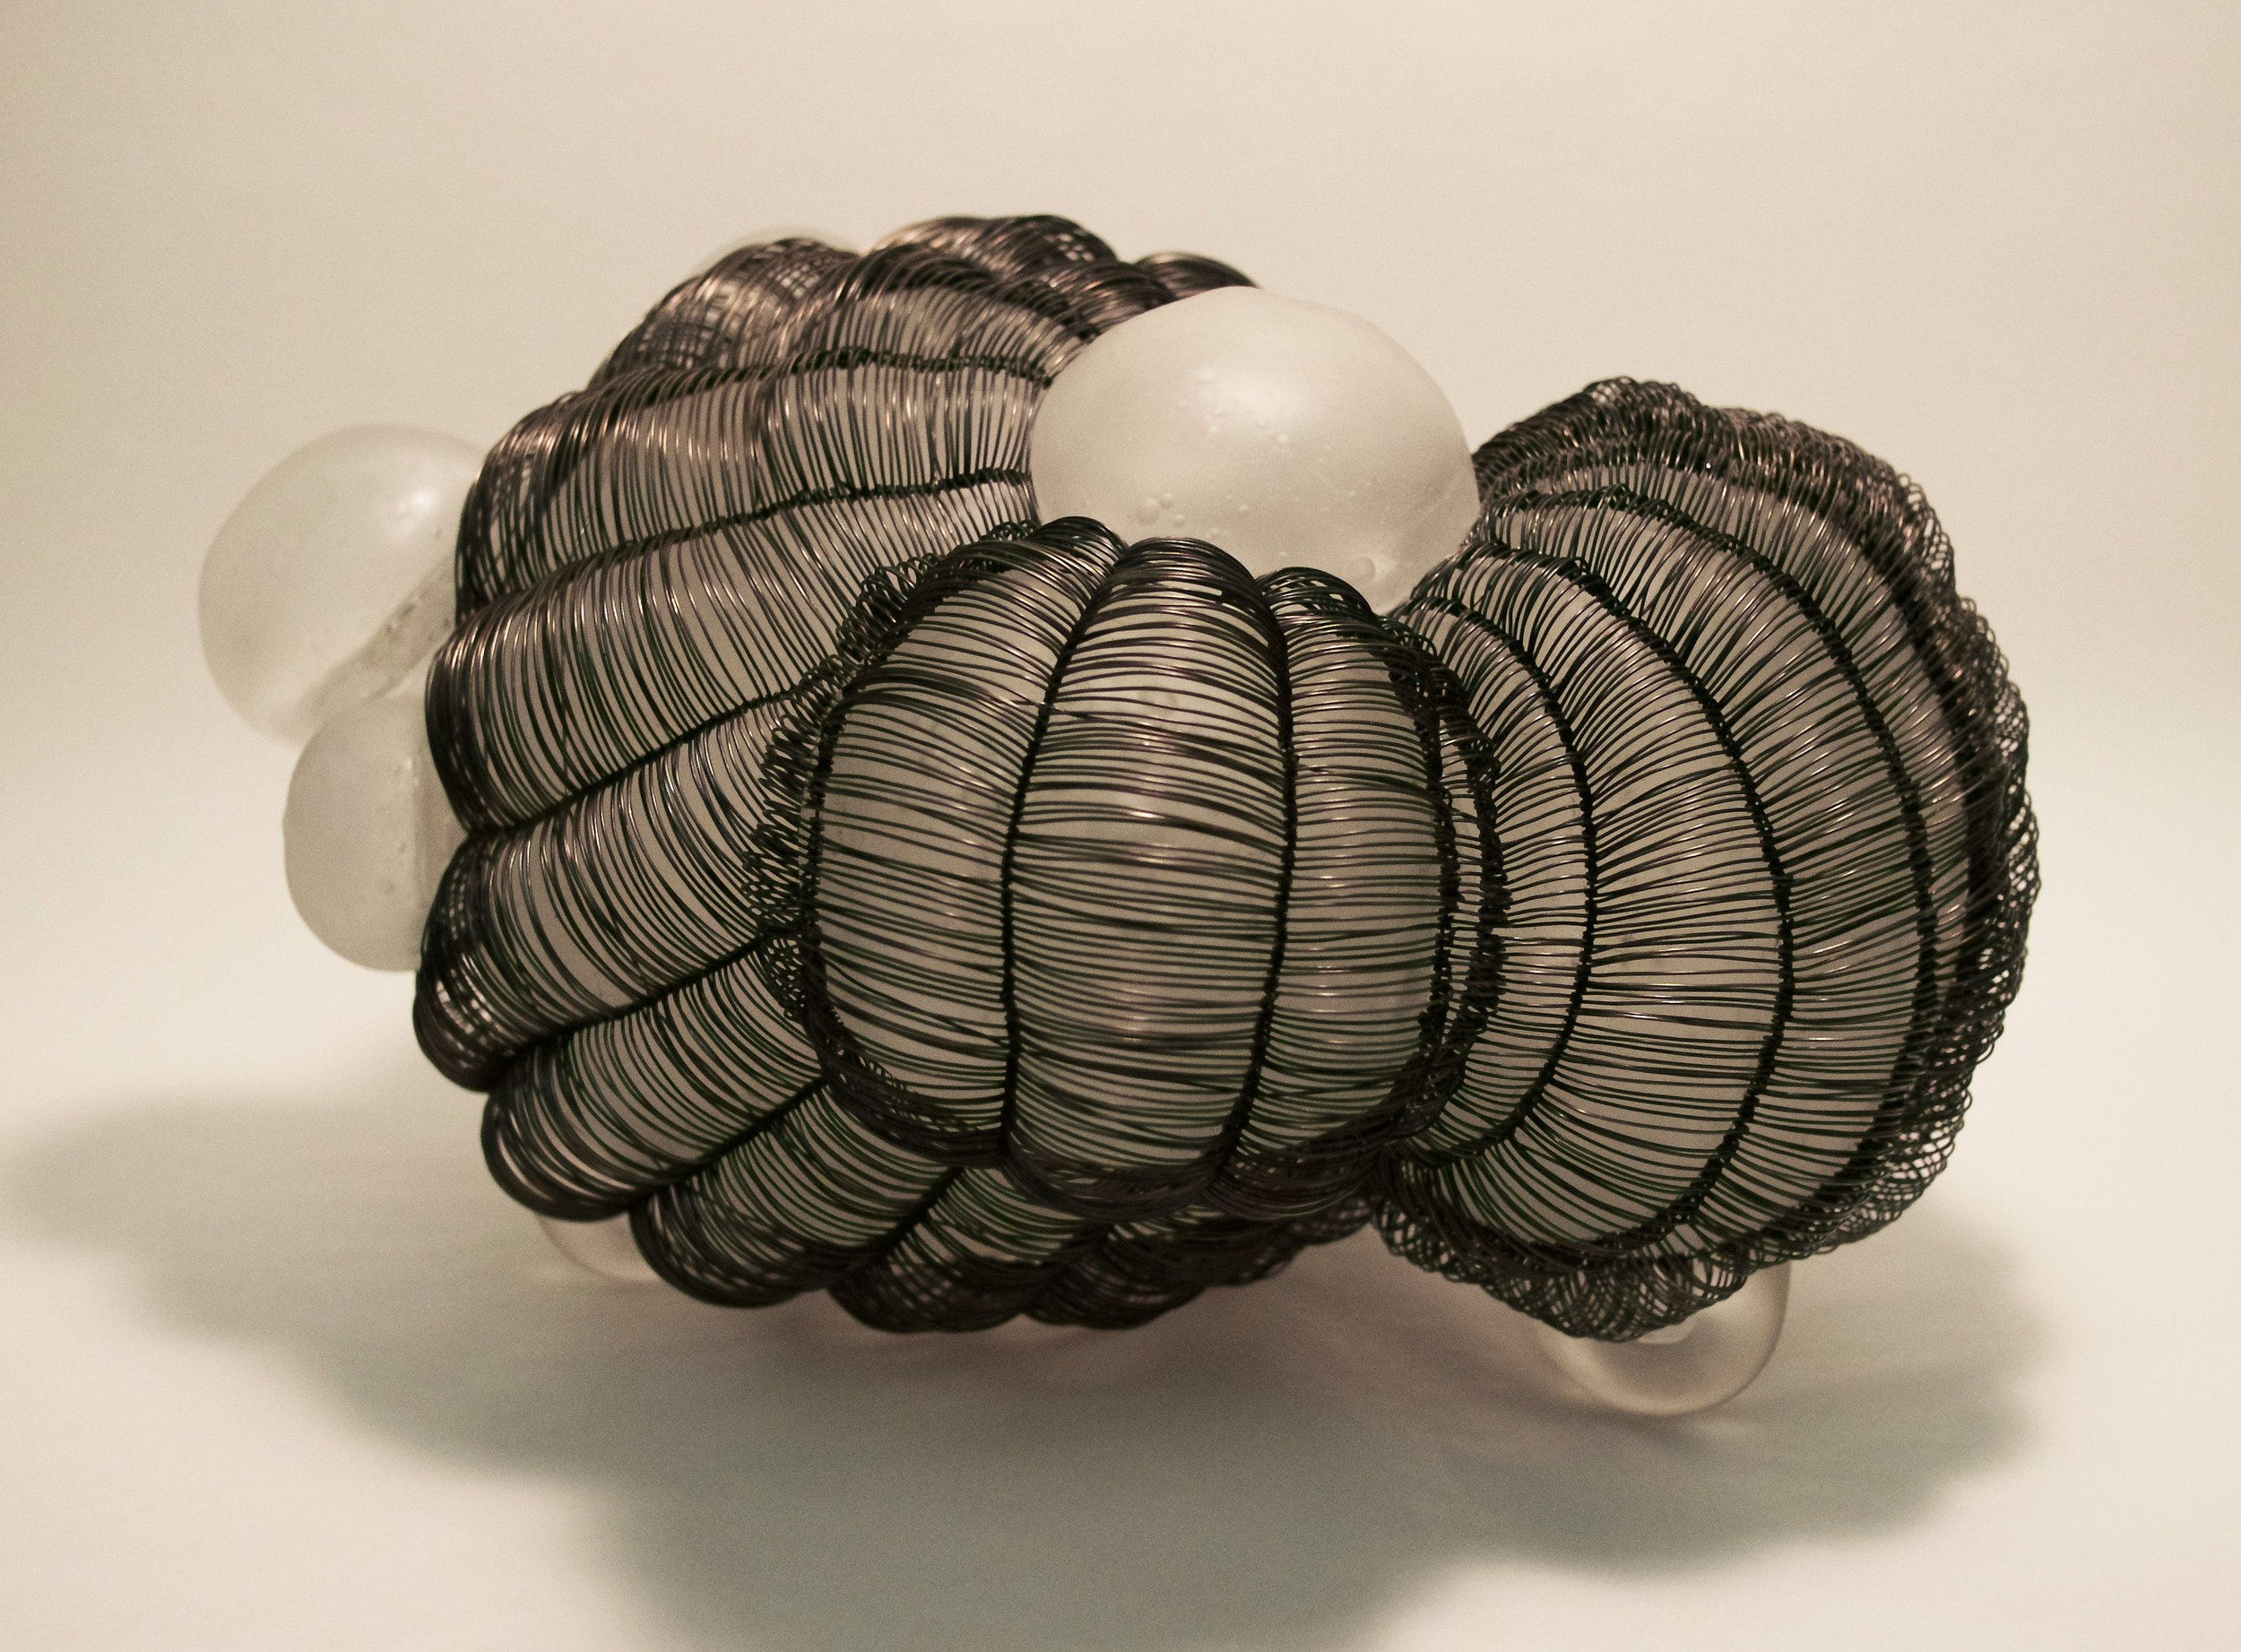 """Caged 1, side view, blown glass with woven steel wire, 8""""x11""""x13"""", 2019"""